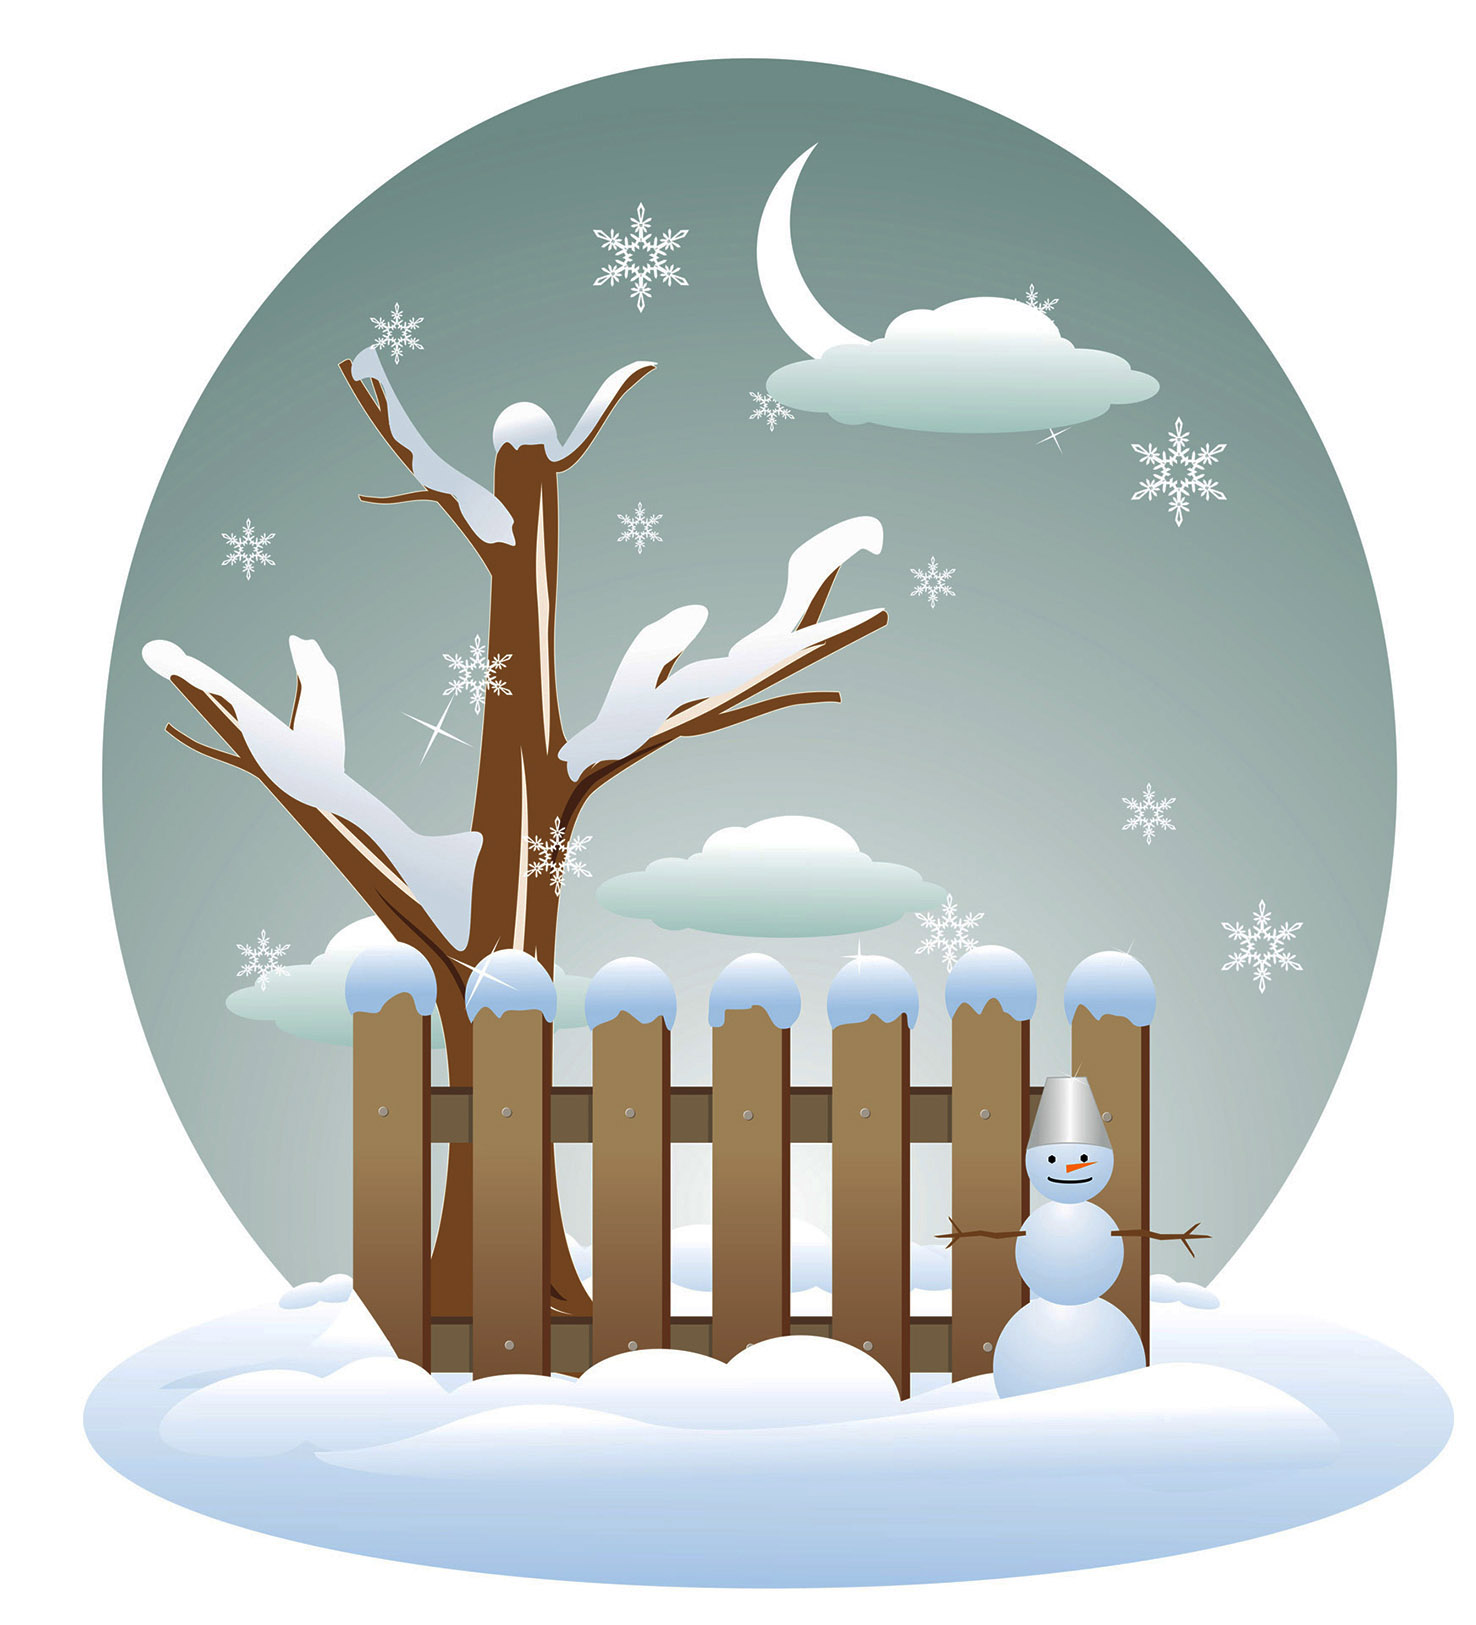 Years clipart winter. Seasons of the year